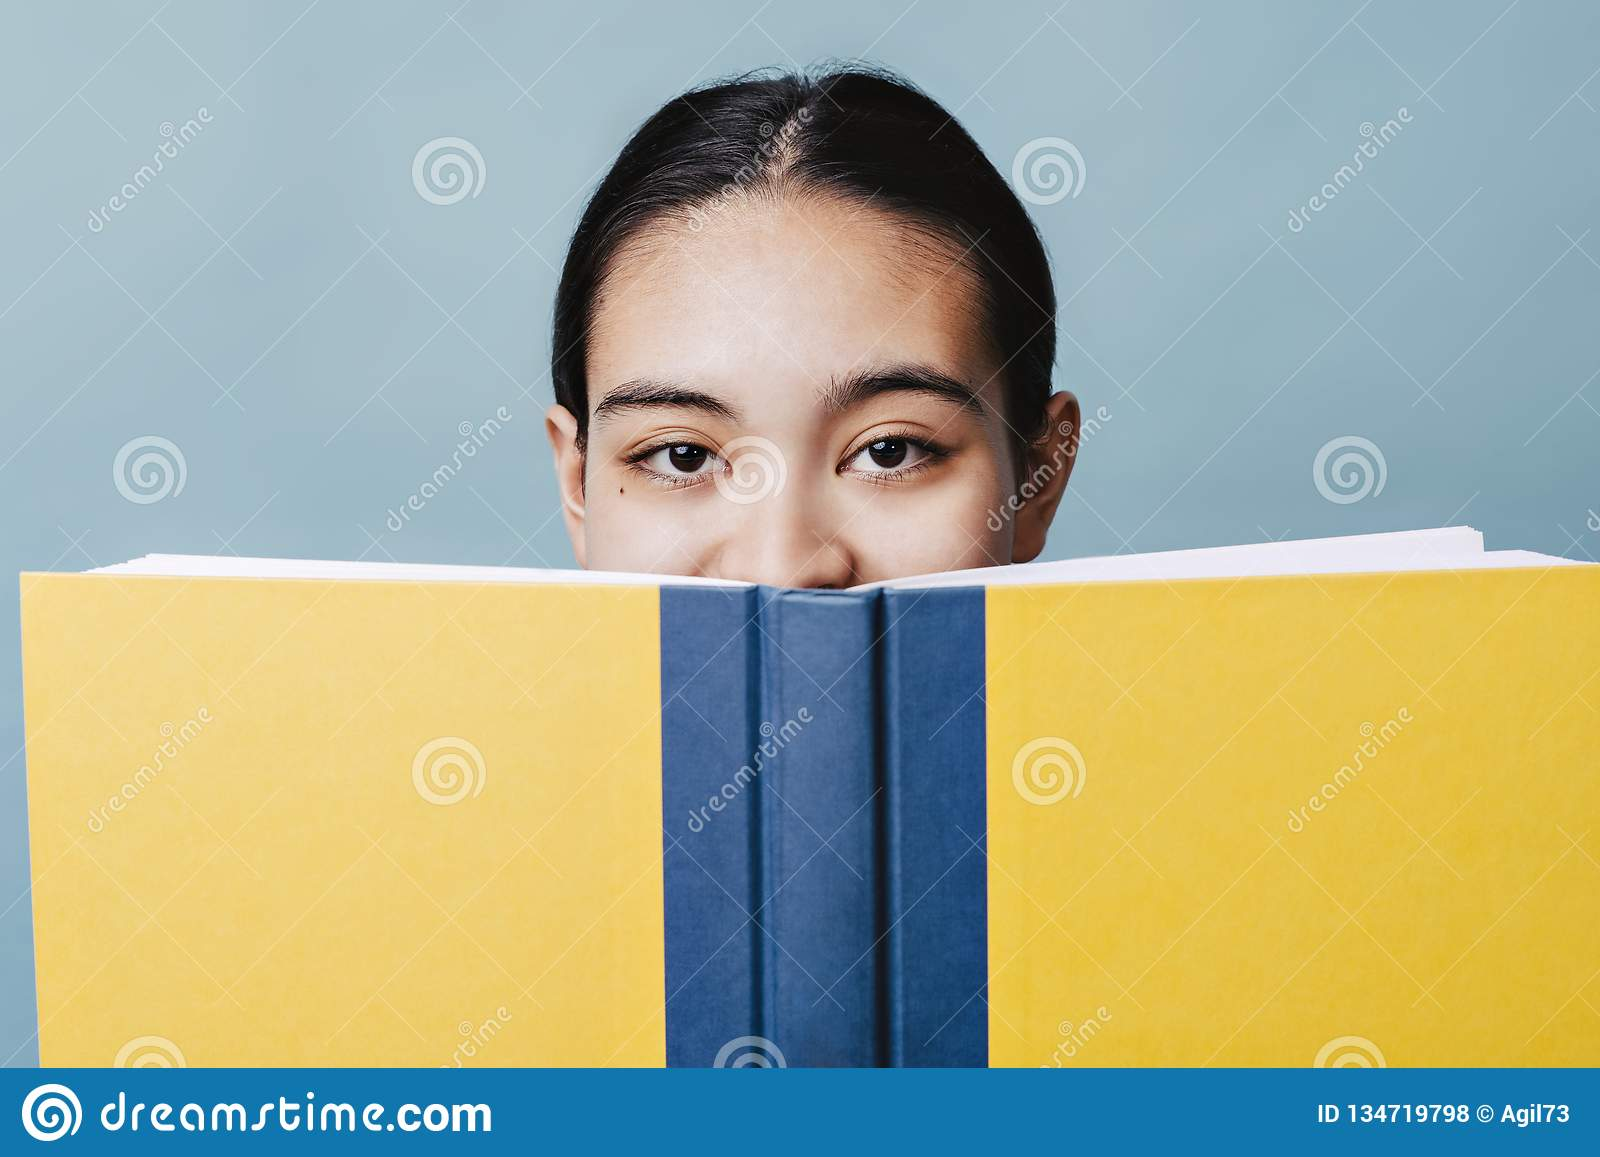 Beautiful Teen Girl Hides Her Smile Behind a Textbook Happy